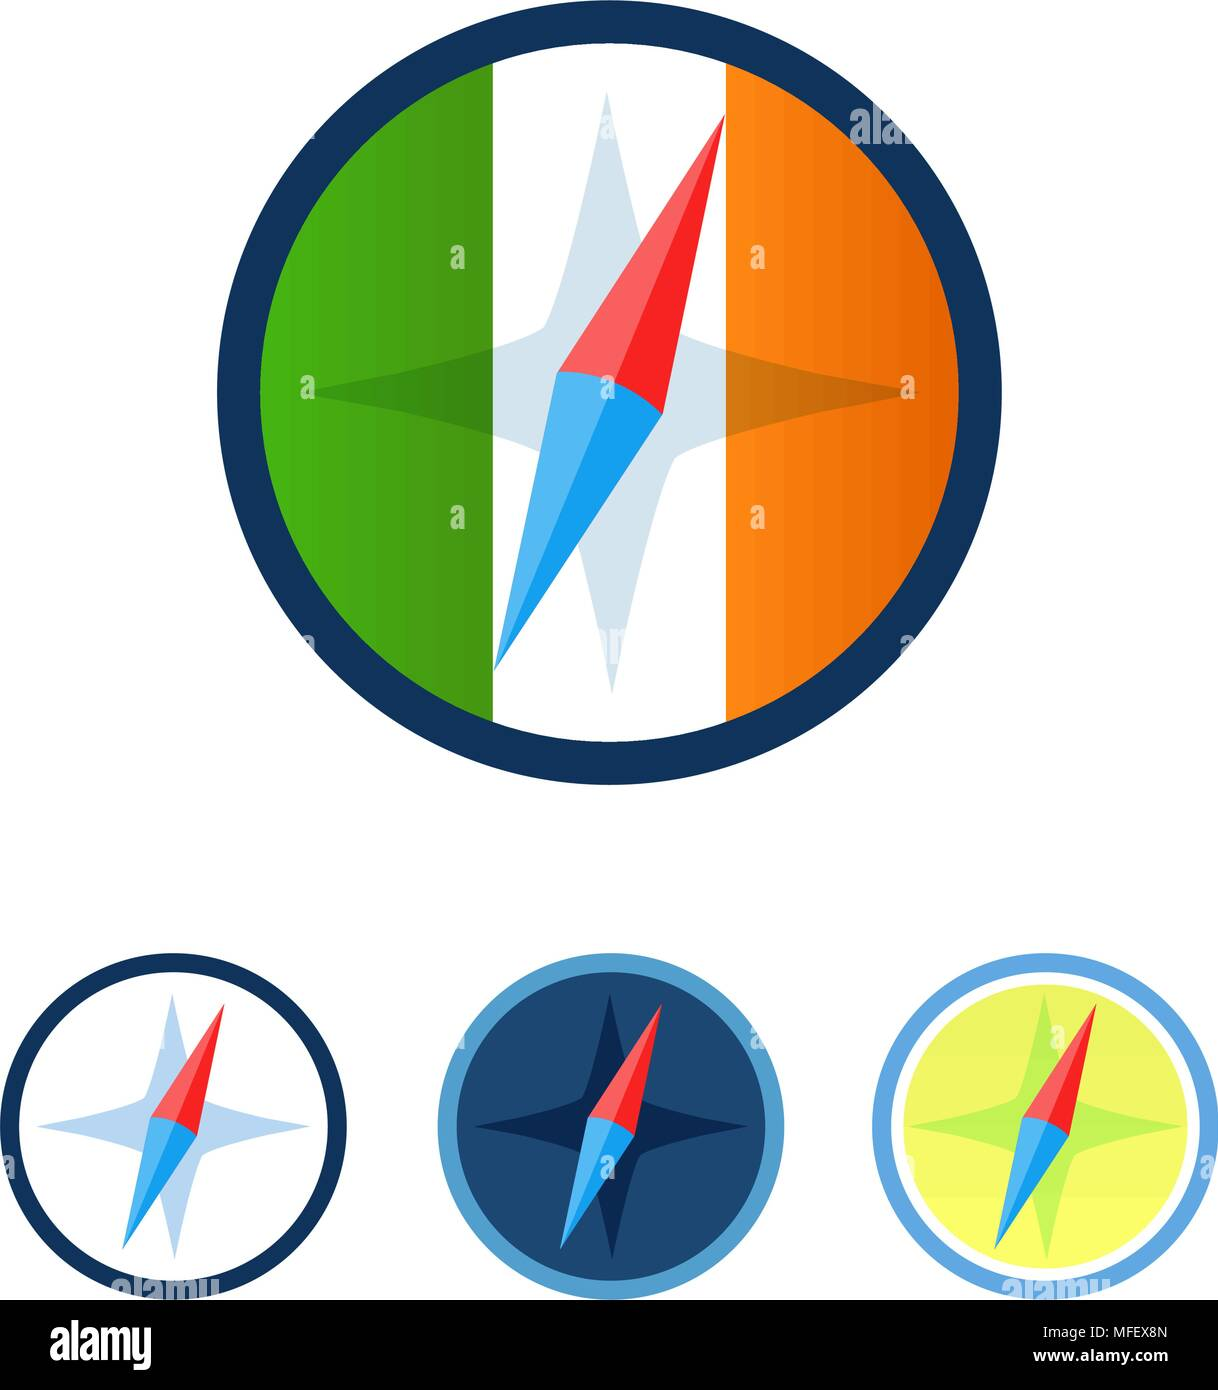 Set of Compasses - Stock Vector